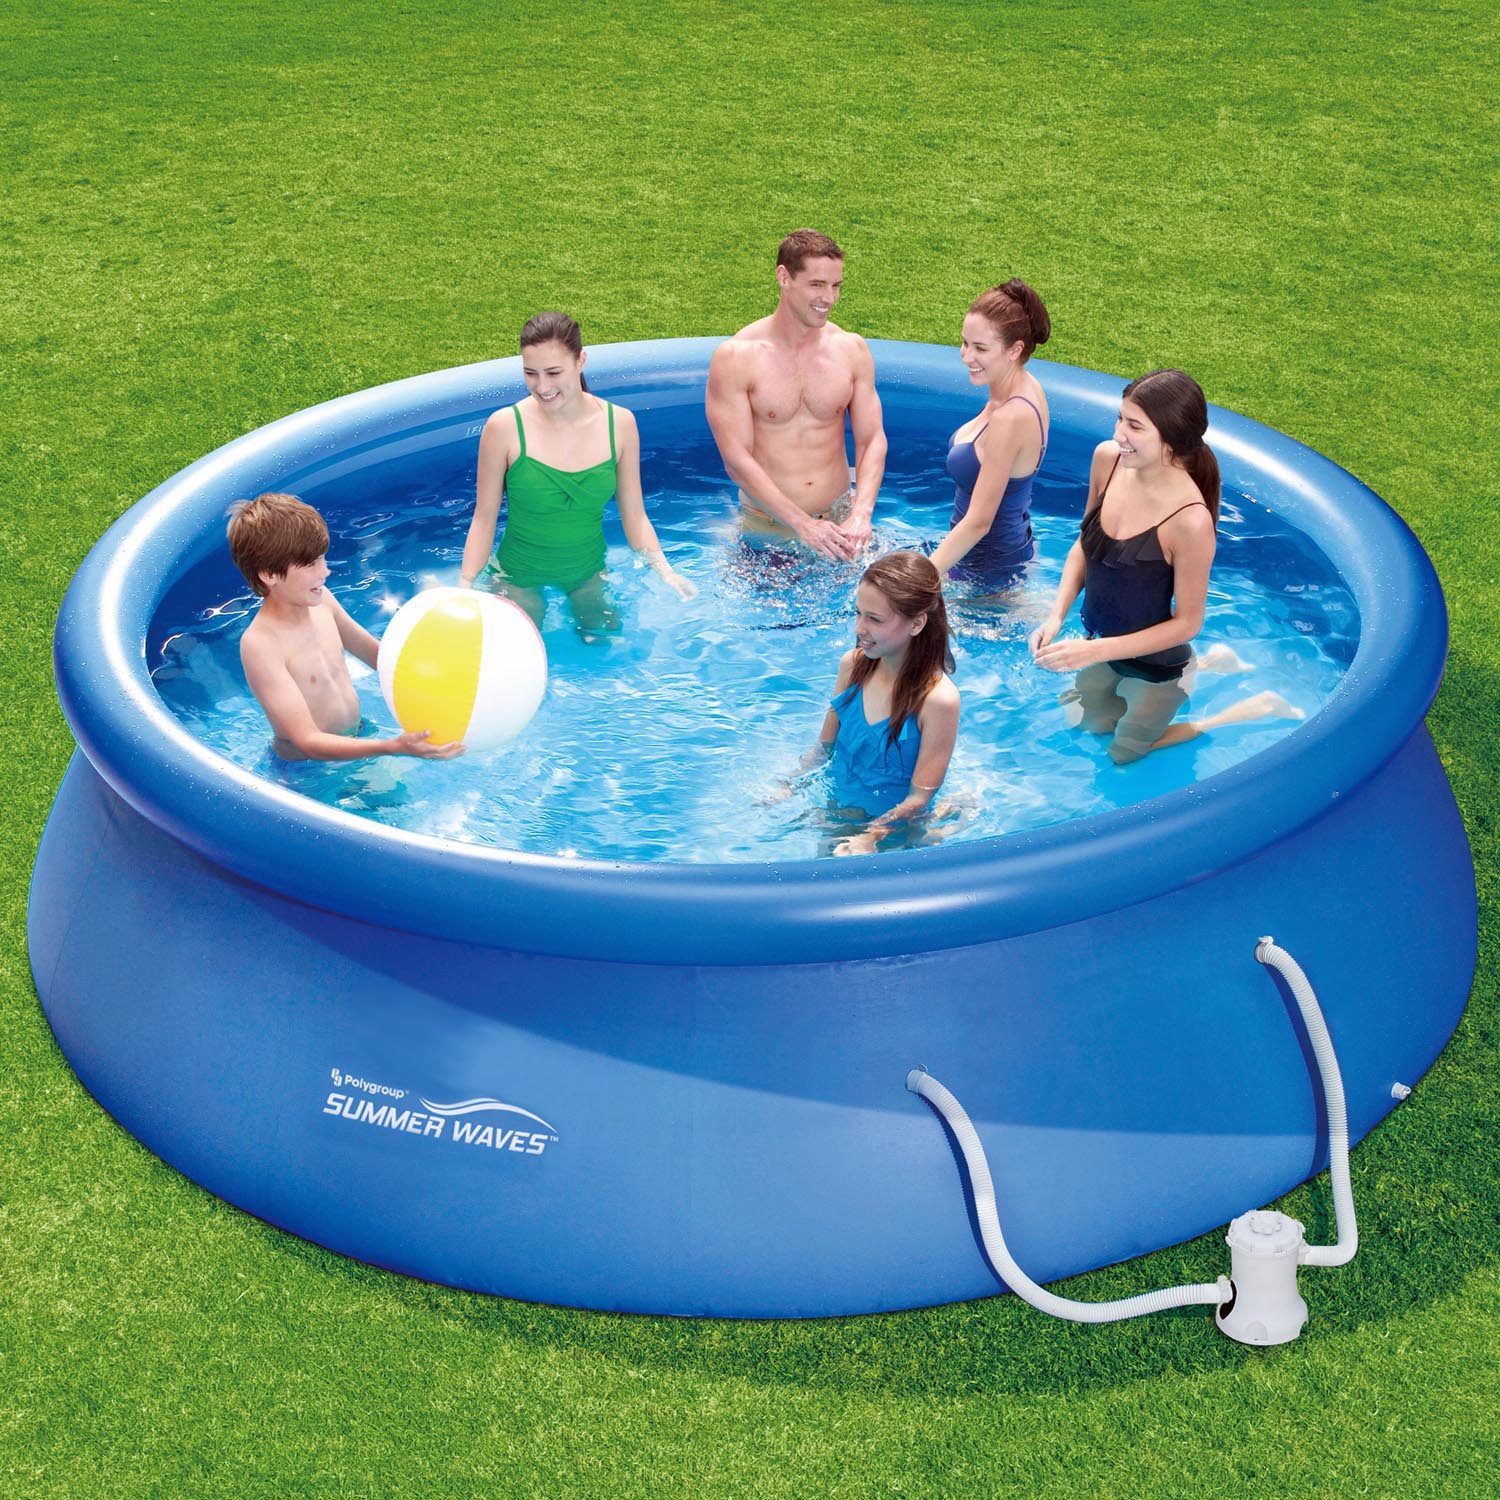 Abdeckplane Quick Up Pool Summer Waves Fast Set Quick Up Pool 43 Pumpe 305x76cm